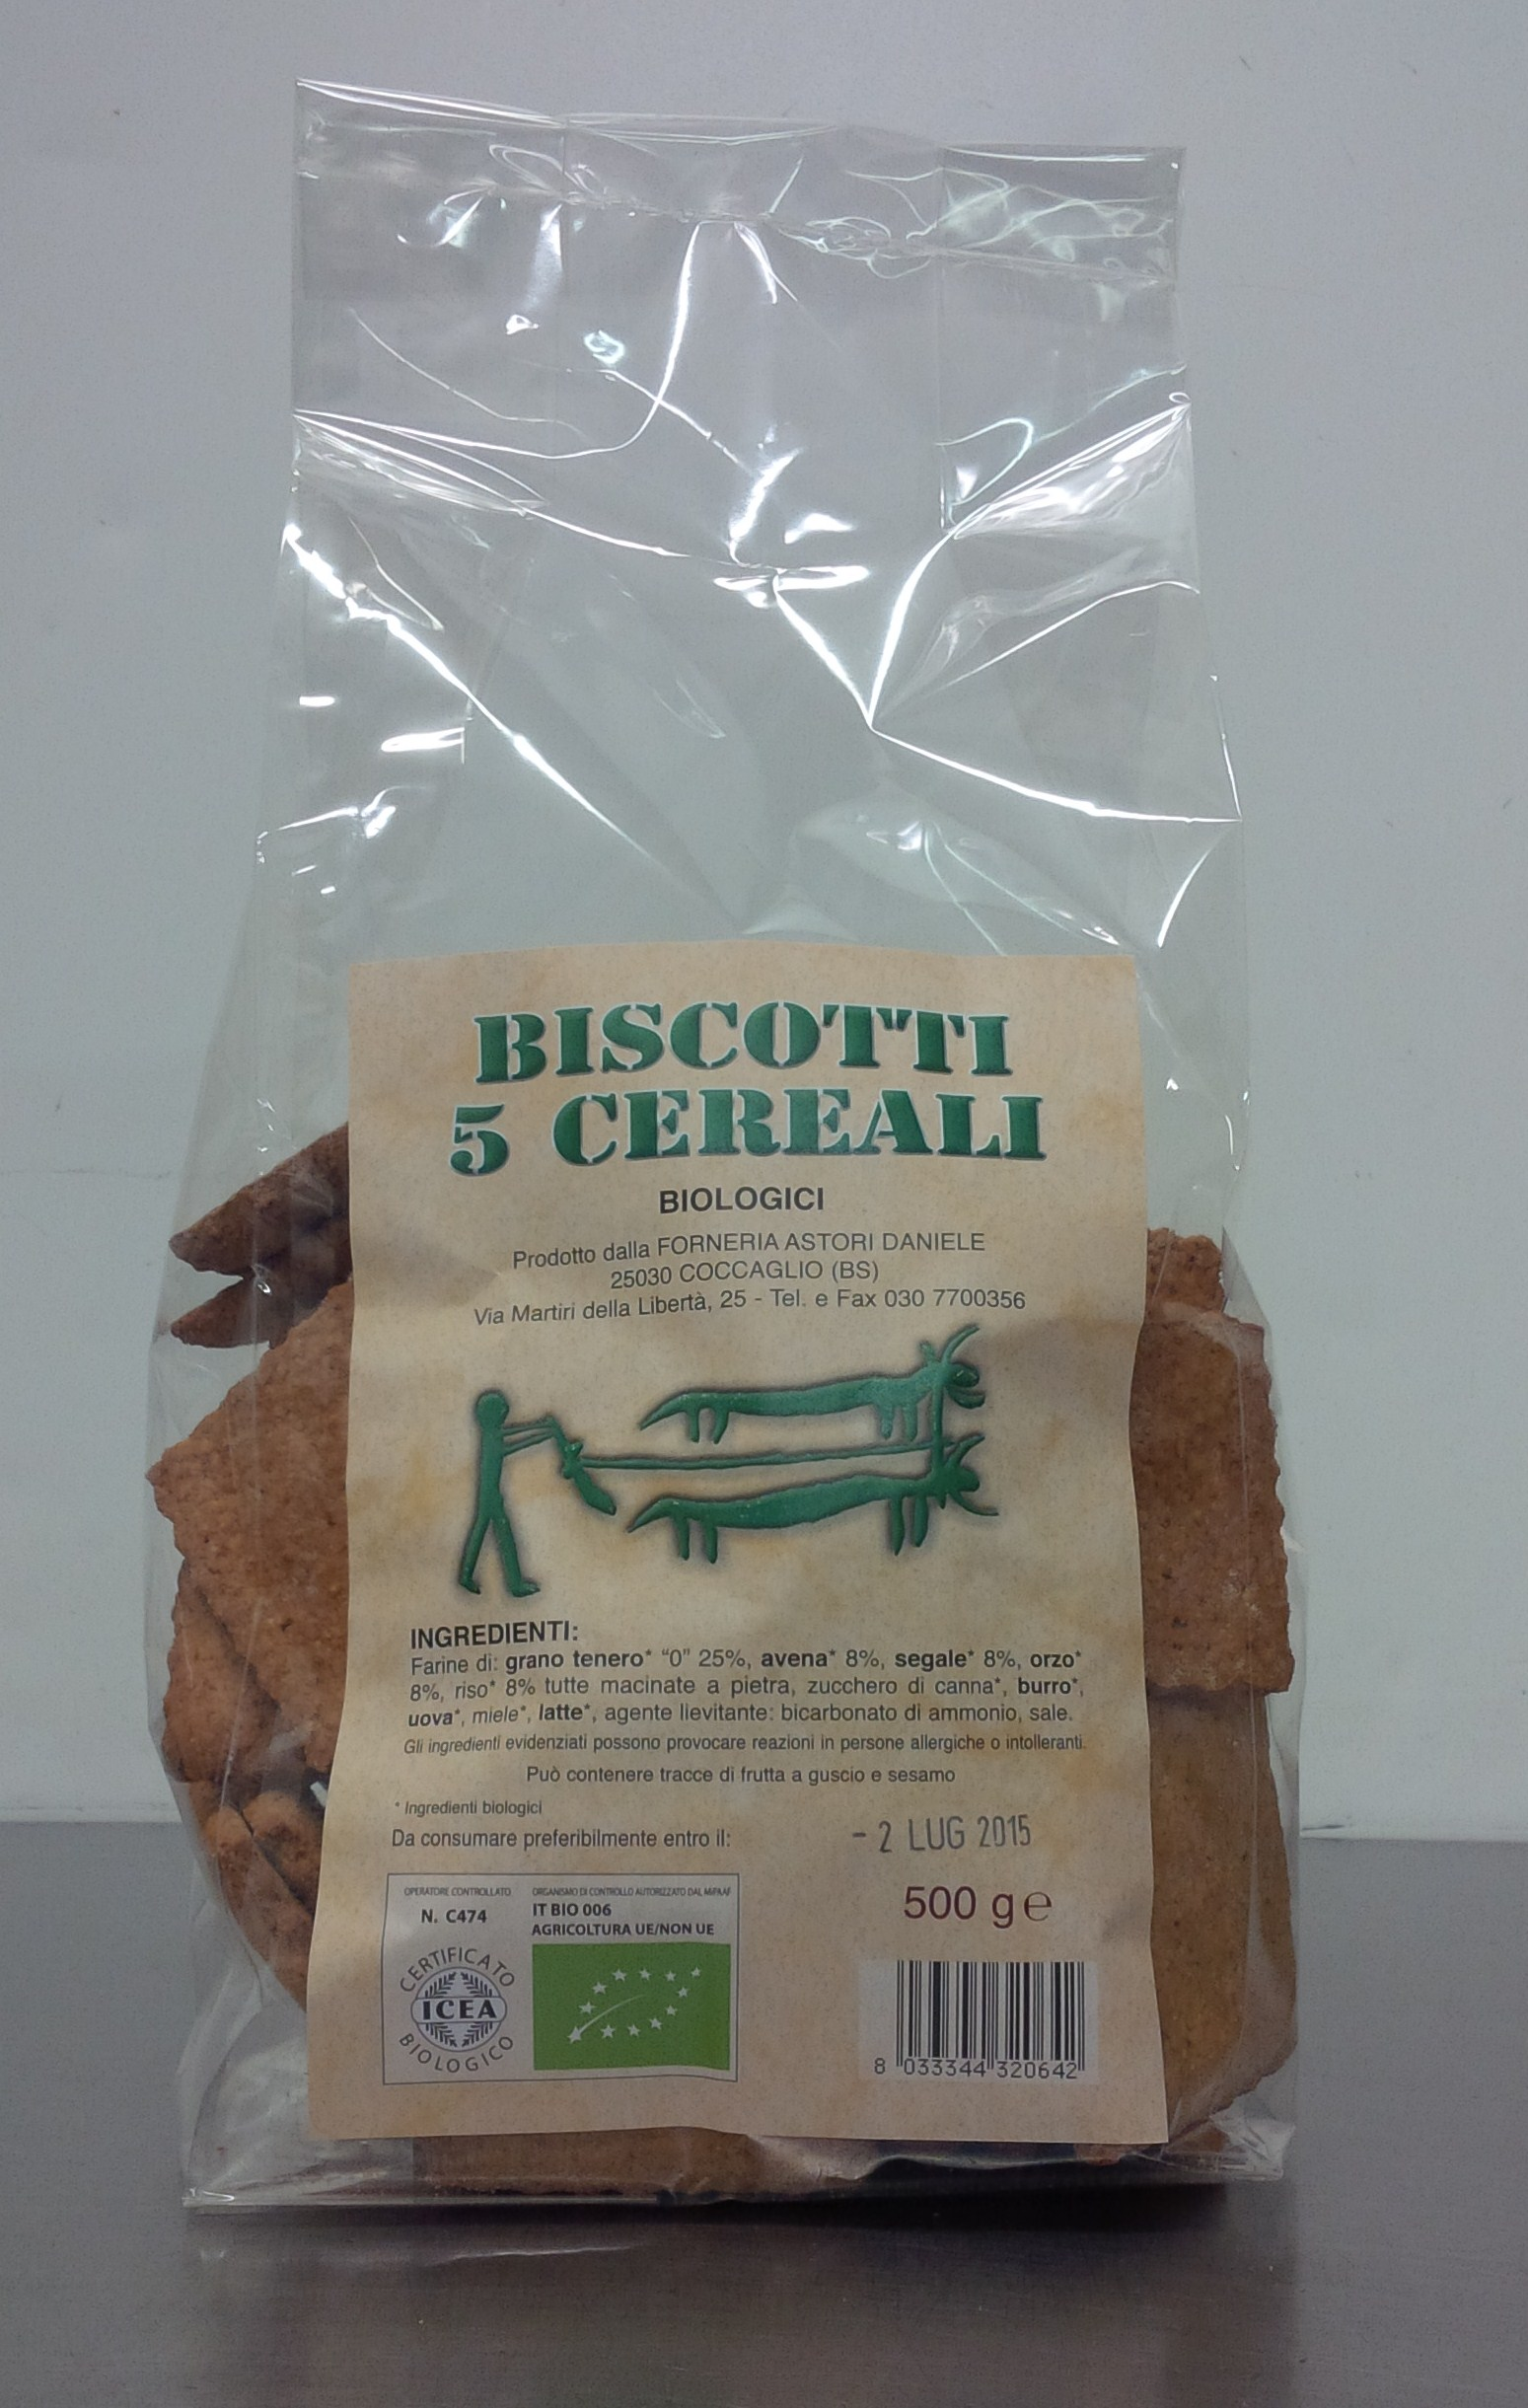 Artisan biscuits made from 5 cereals - Forno Astori